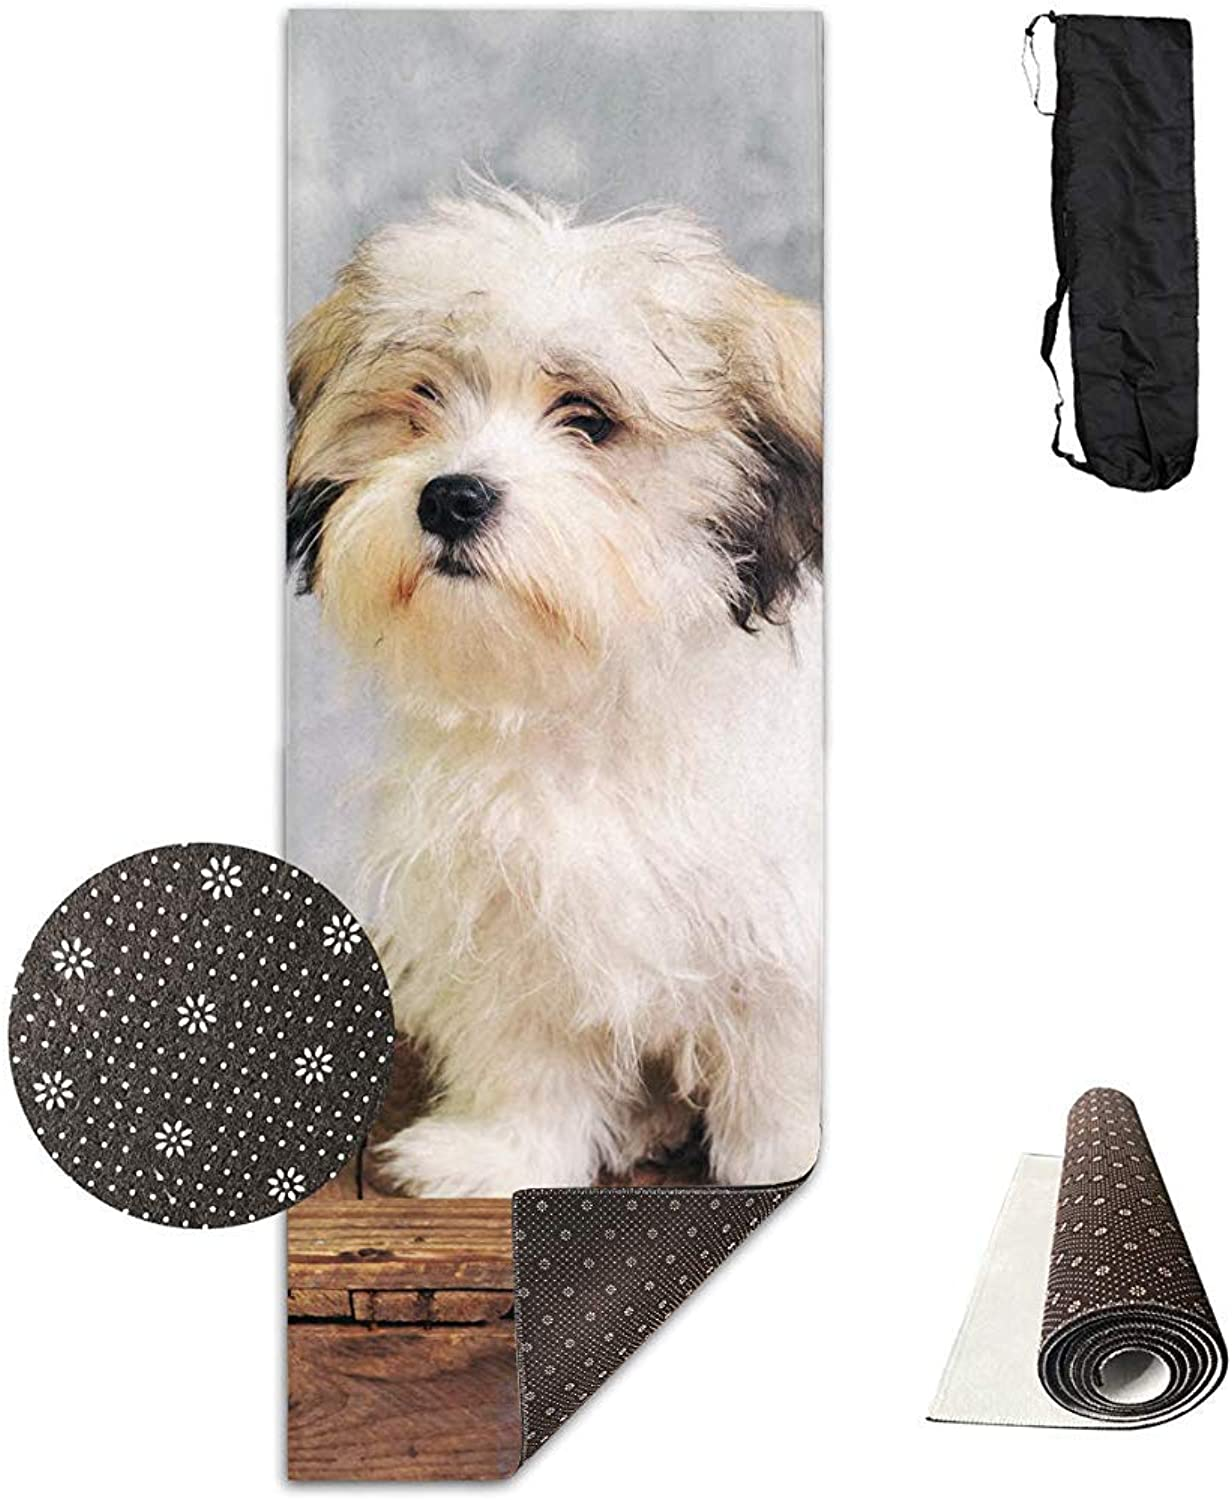 CC Decoration Fitness Mat,Malteser Hundesitting Yoga Mat Stilvolle Druck-übungs-Yoga-Matten Für Breathwork Yoga Pilates